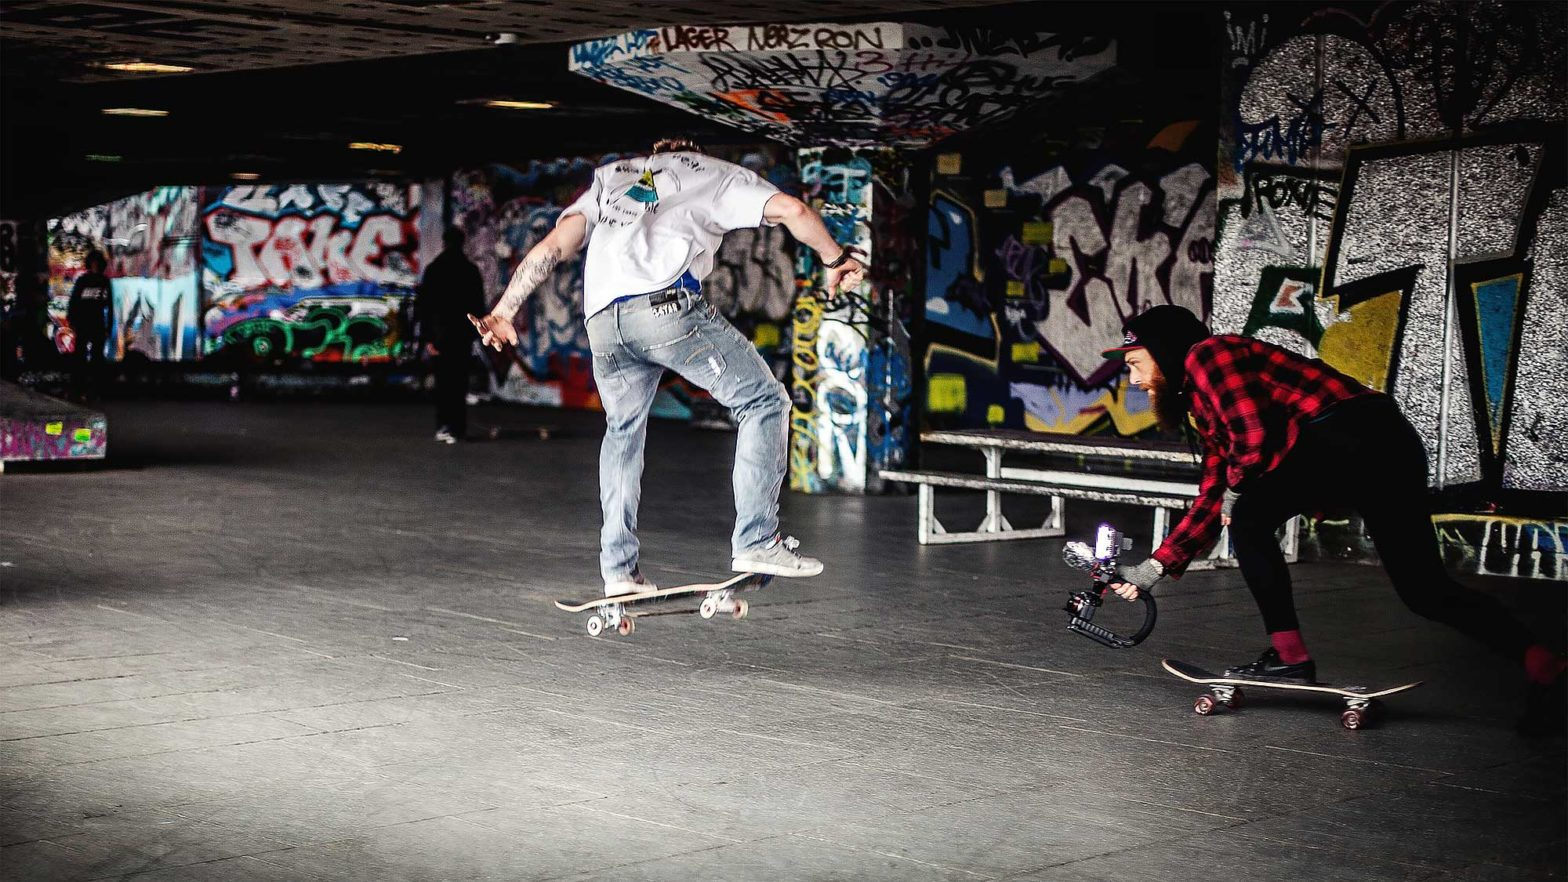 Finland Skateboarding School Opens in 2021